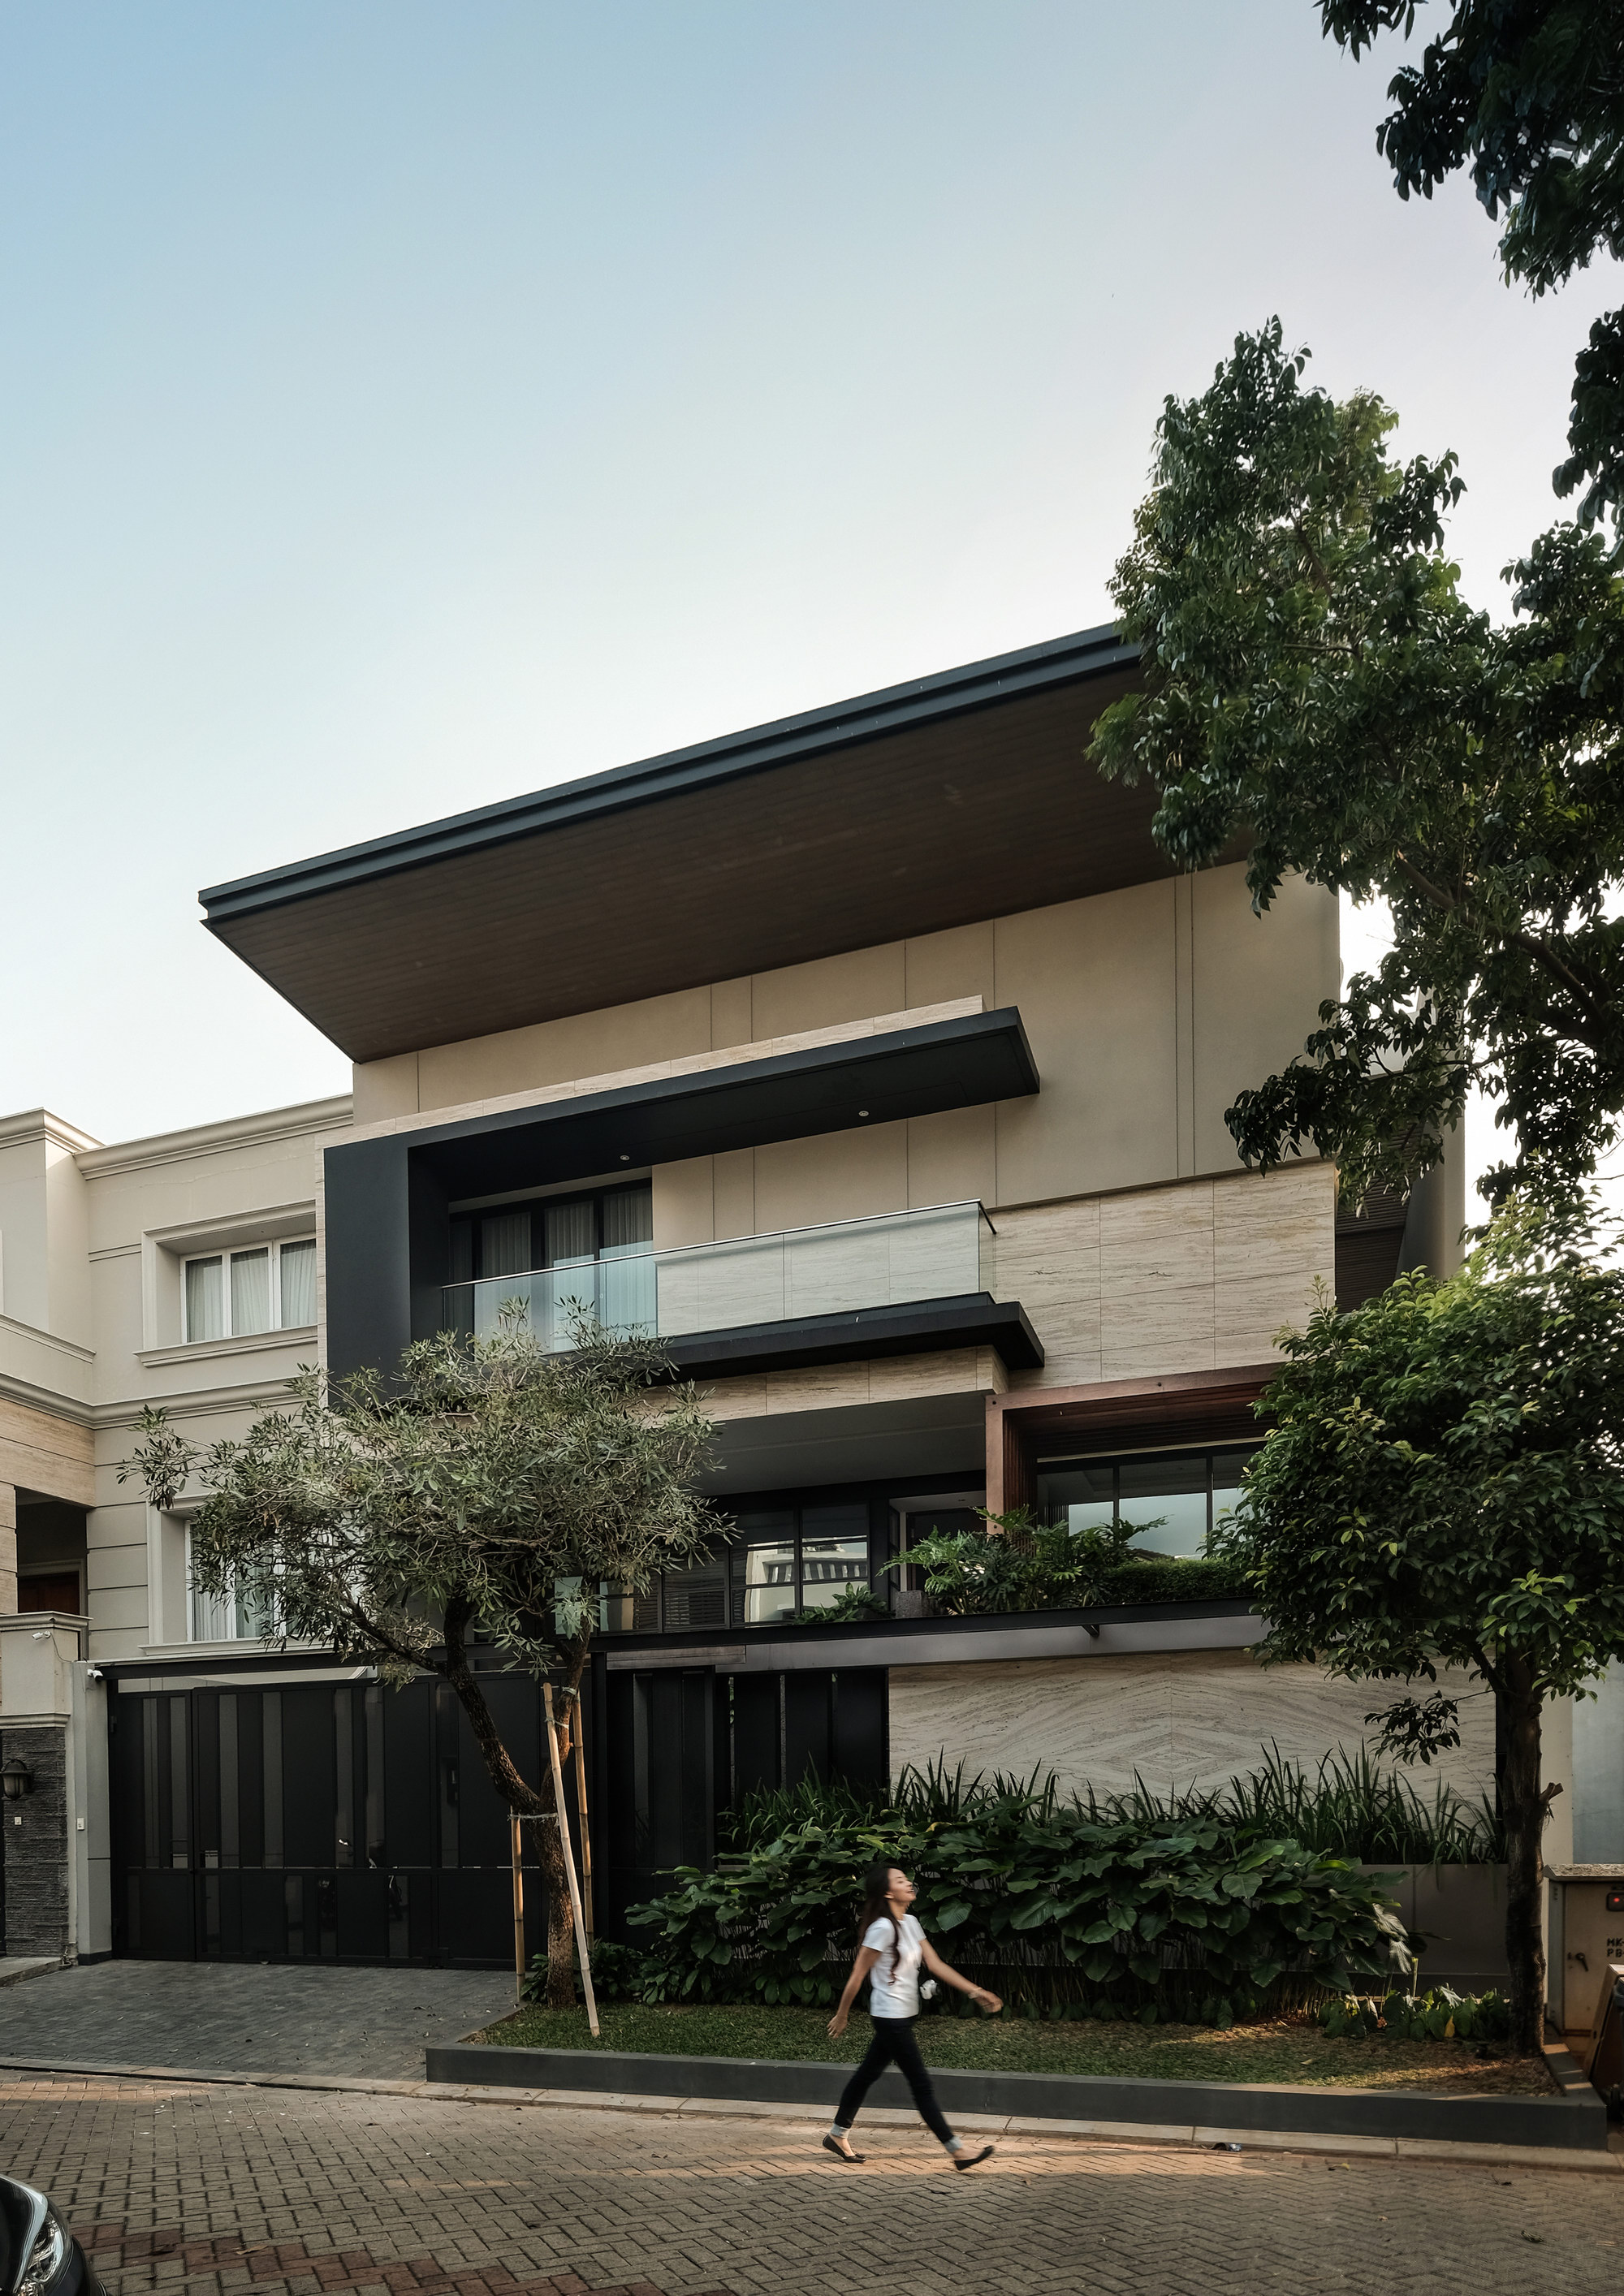 DL House by DP+HS Architects